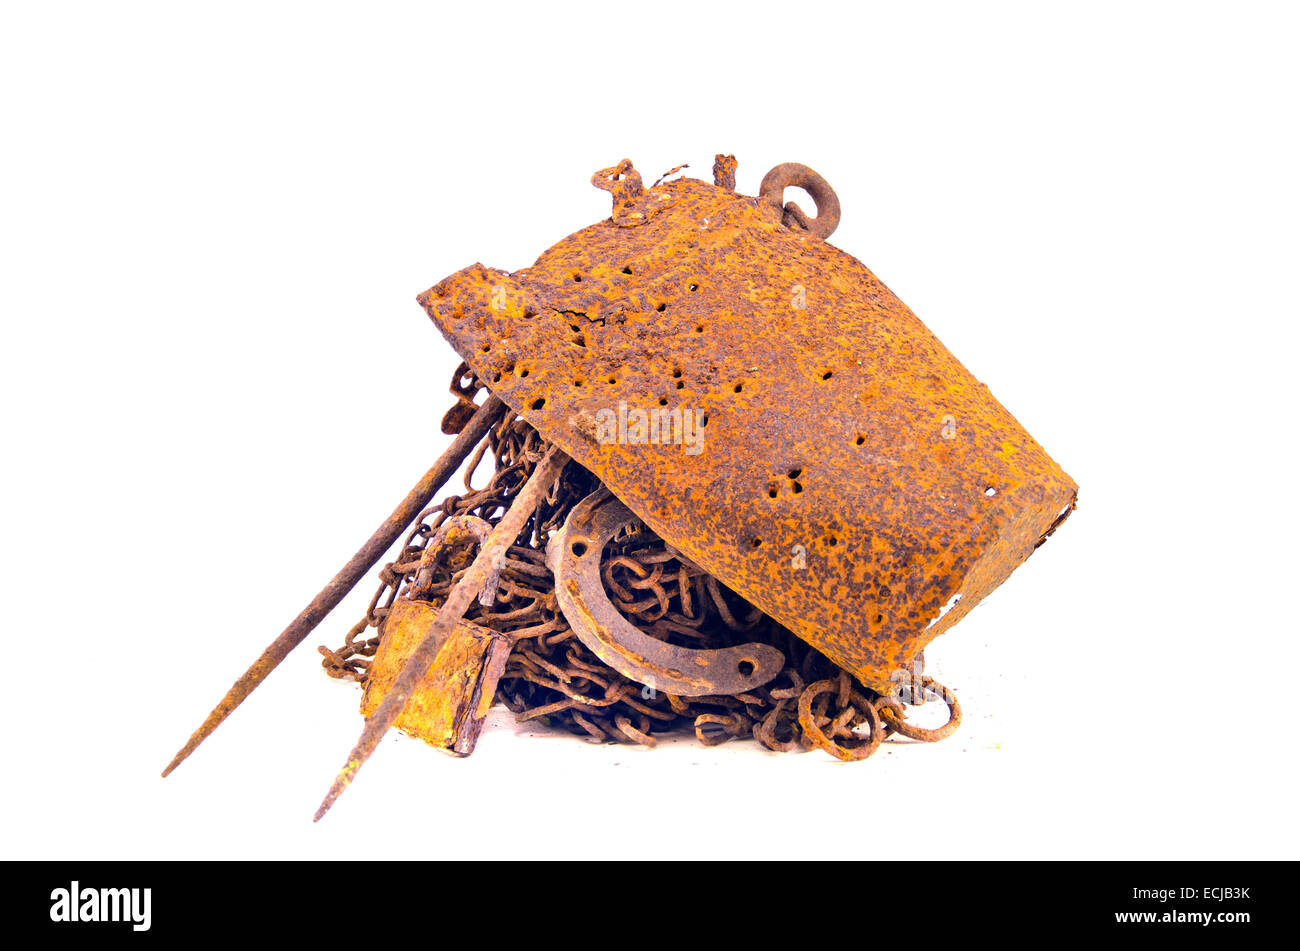 rusty iron steel metal scrap for recycling  isolated on white background - Stock Image